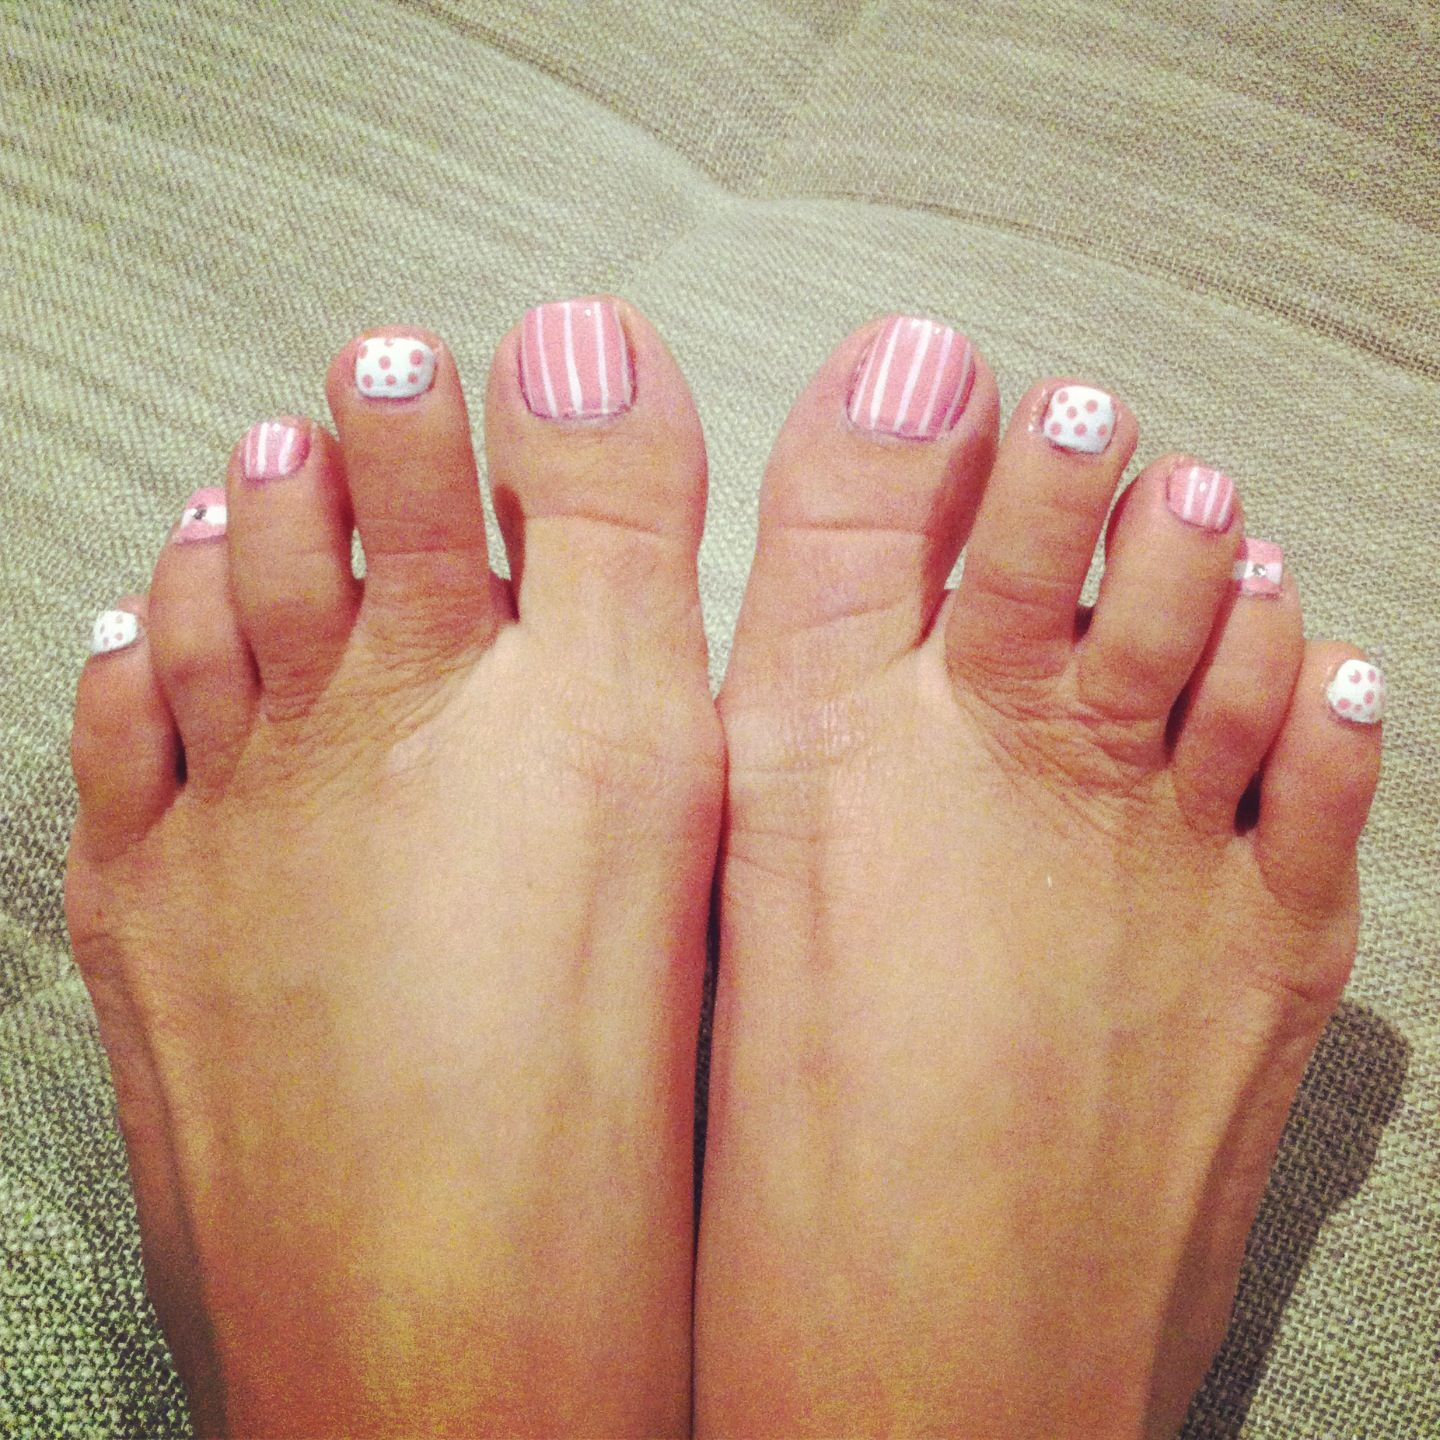 Pin By Jamie Dowell On Twinkle Toes Simple Toe Nails Toe Nails Toe Nail Designs